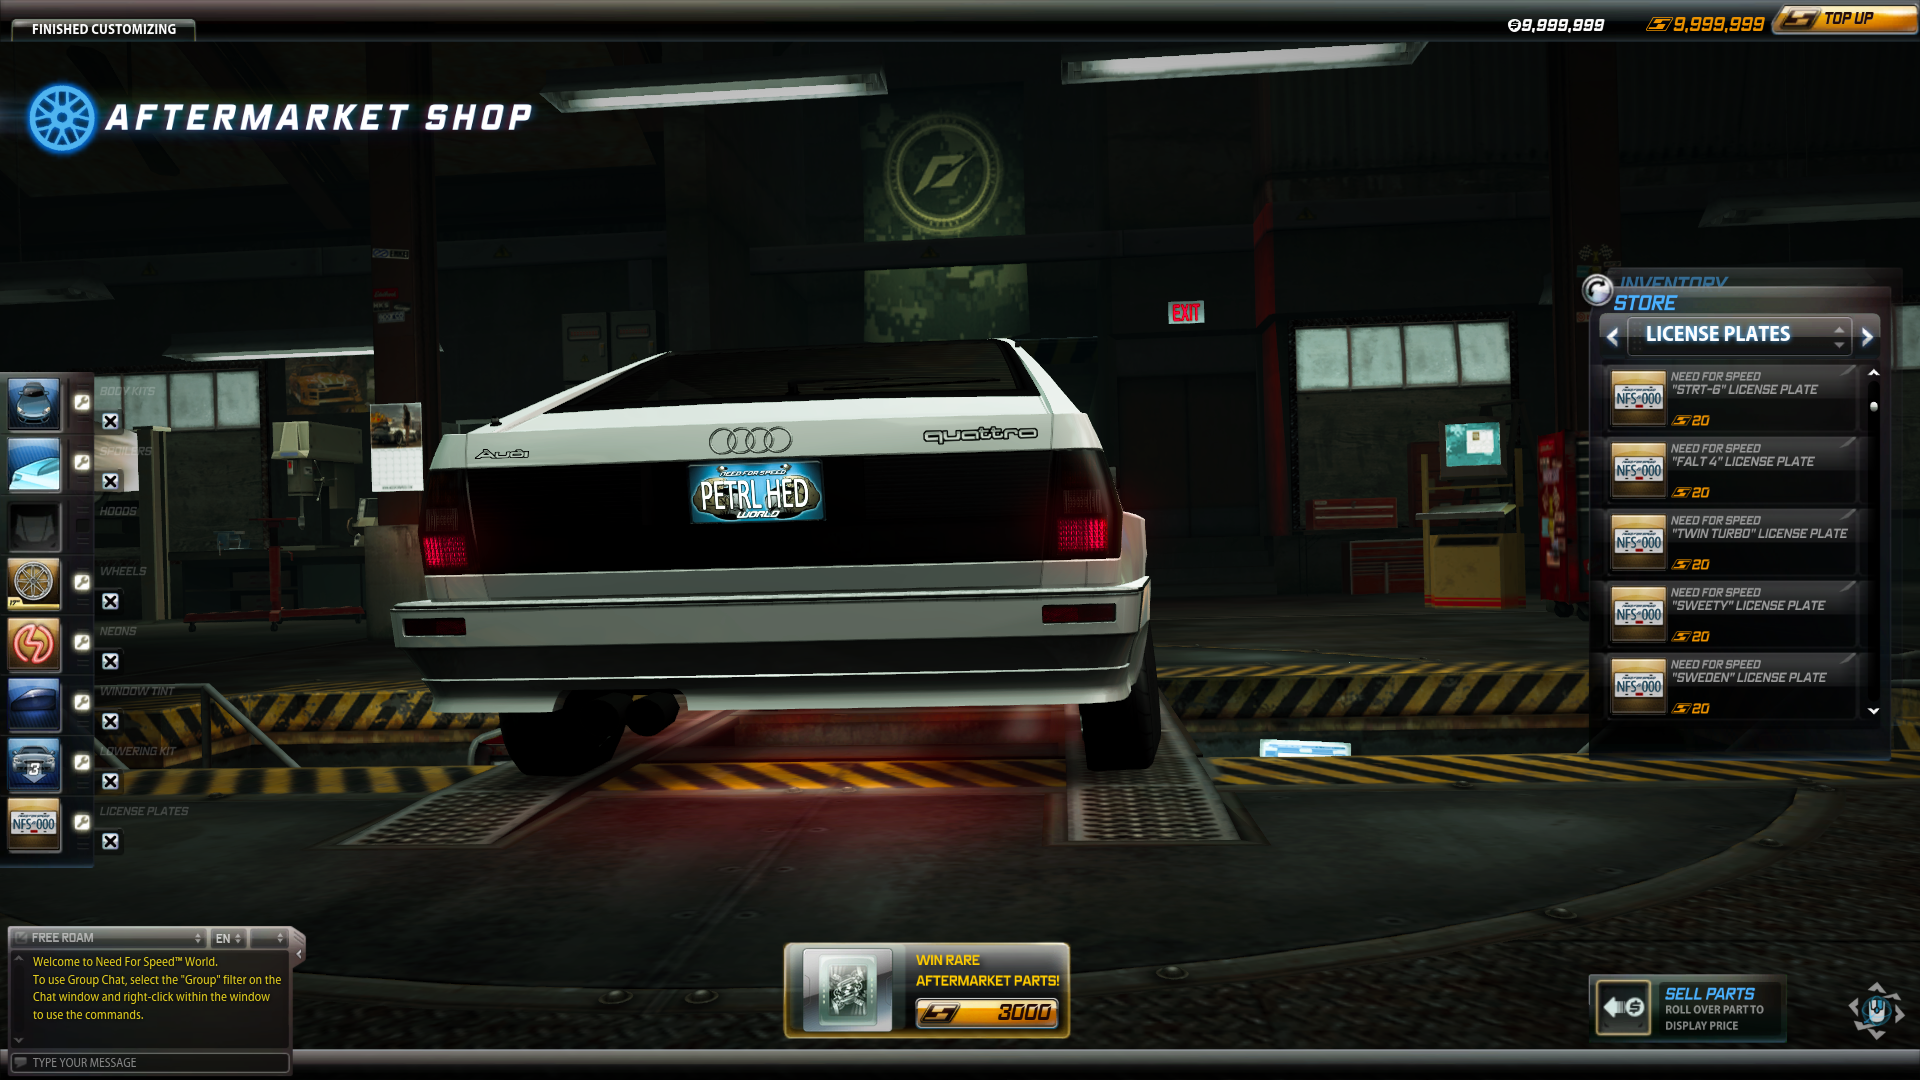 browsing through NFS World OFFLINE License plate when